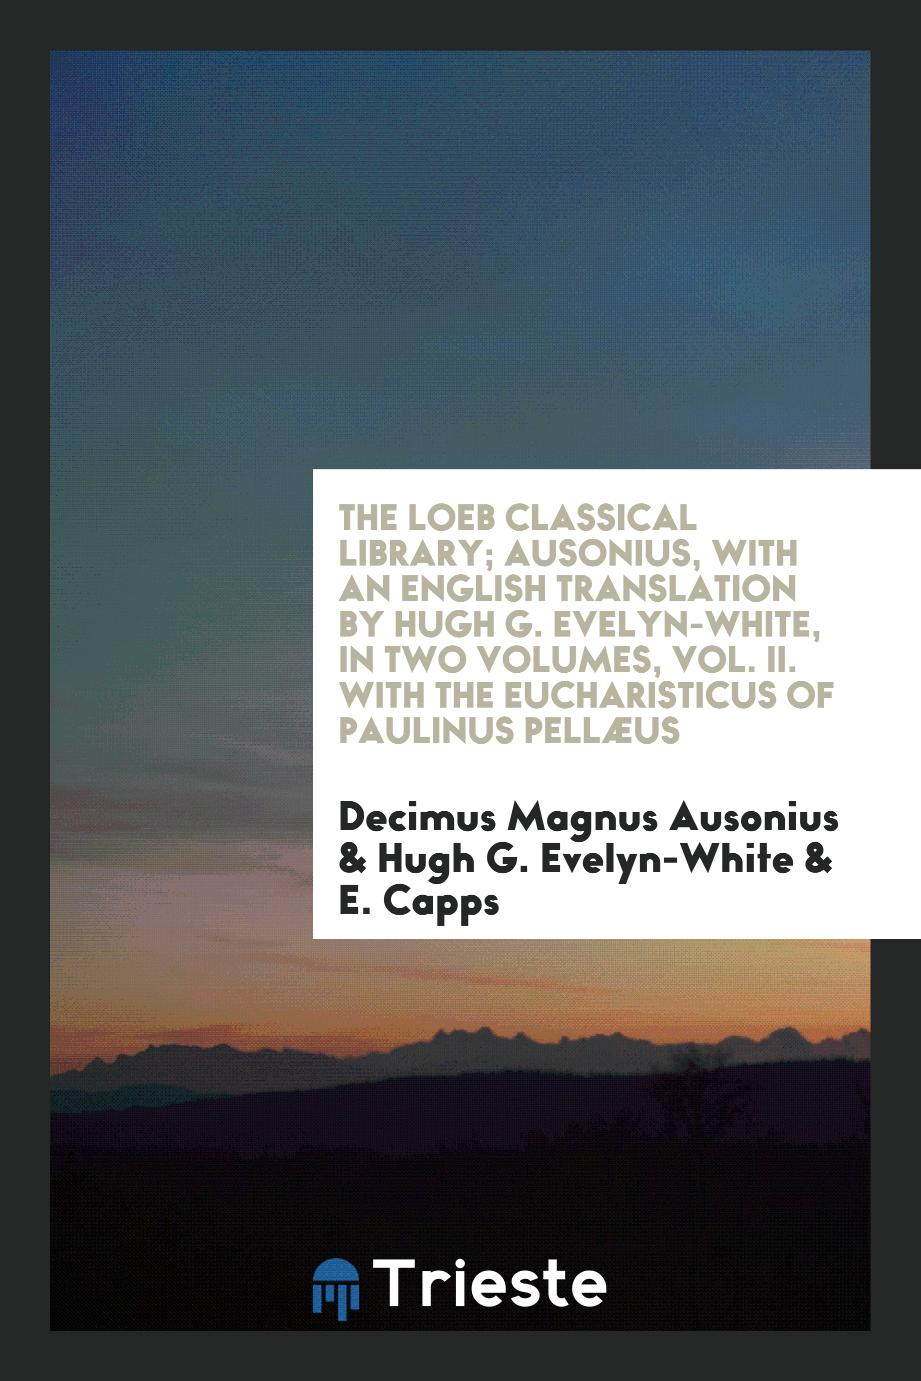 The Loeb Classical Library; Ausonius, with an English Translation by Hugh G. Evelyn-White, in Two Volumes, Vol. II. With the Eucharisticus of Paulinus Pellæus